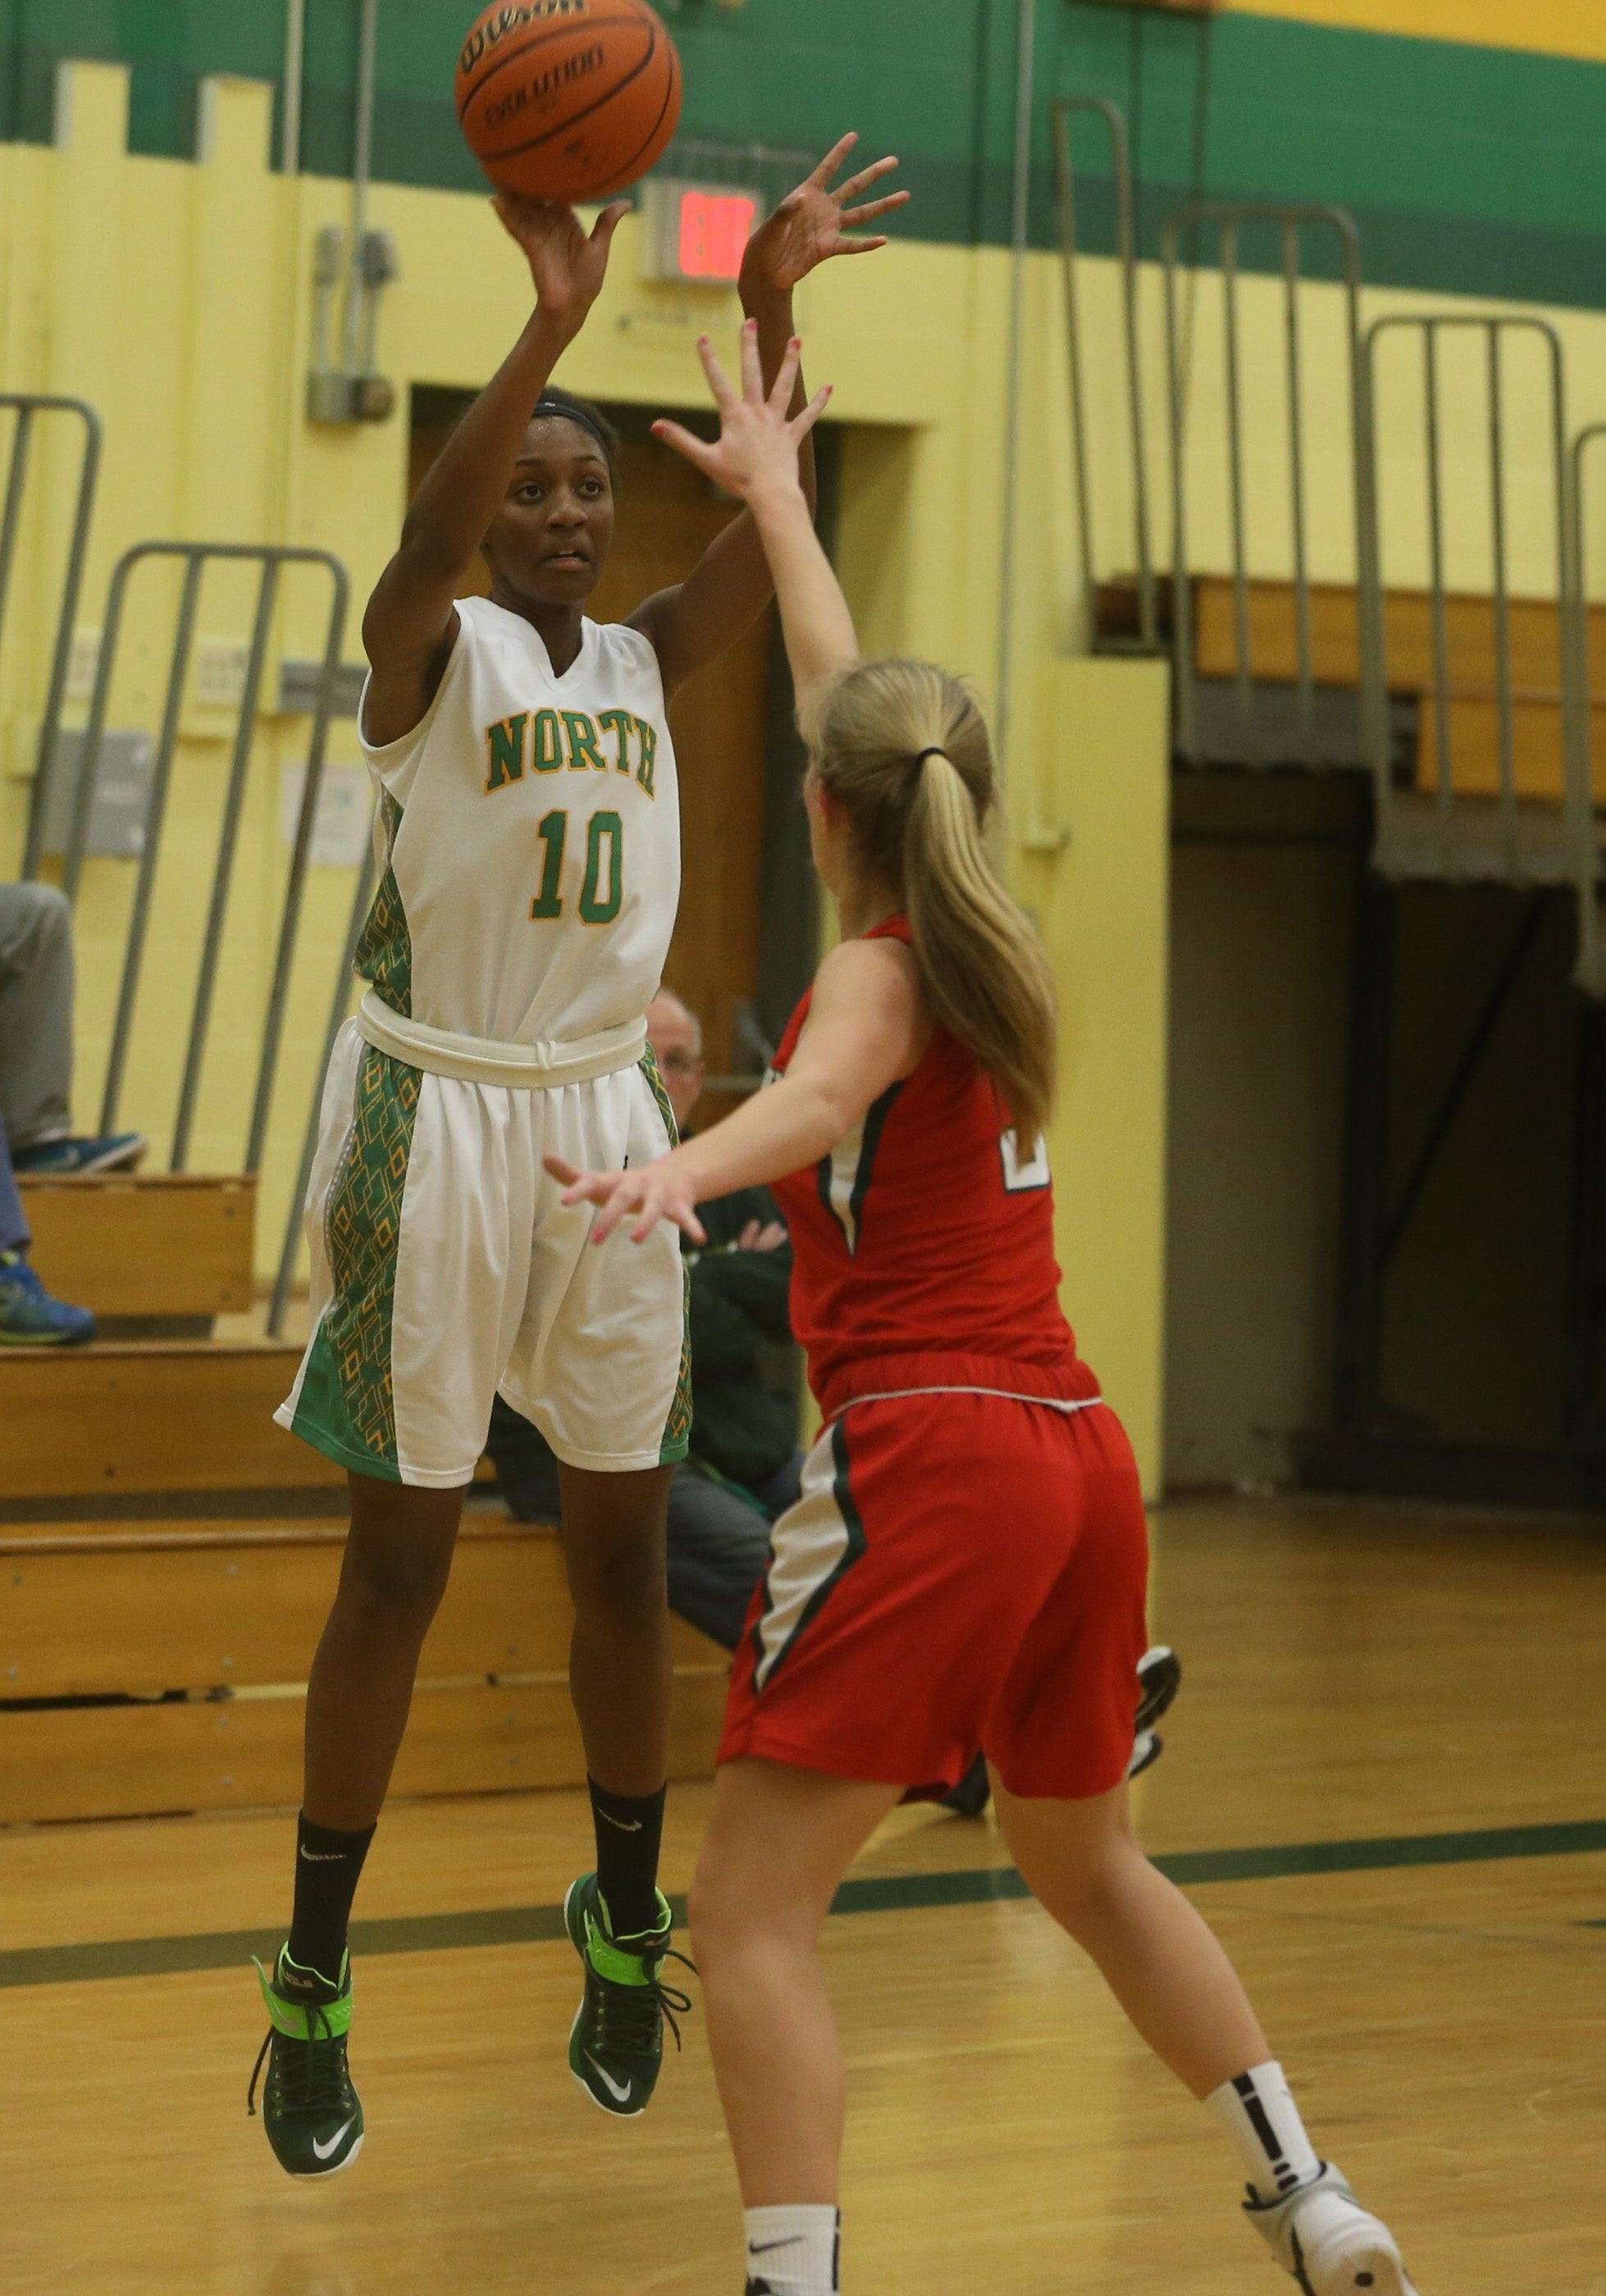 Williamsville North's Ericka Taplin has been superb in crucial situations during the postseason so far this year.